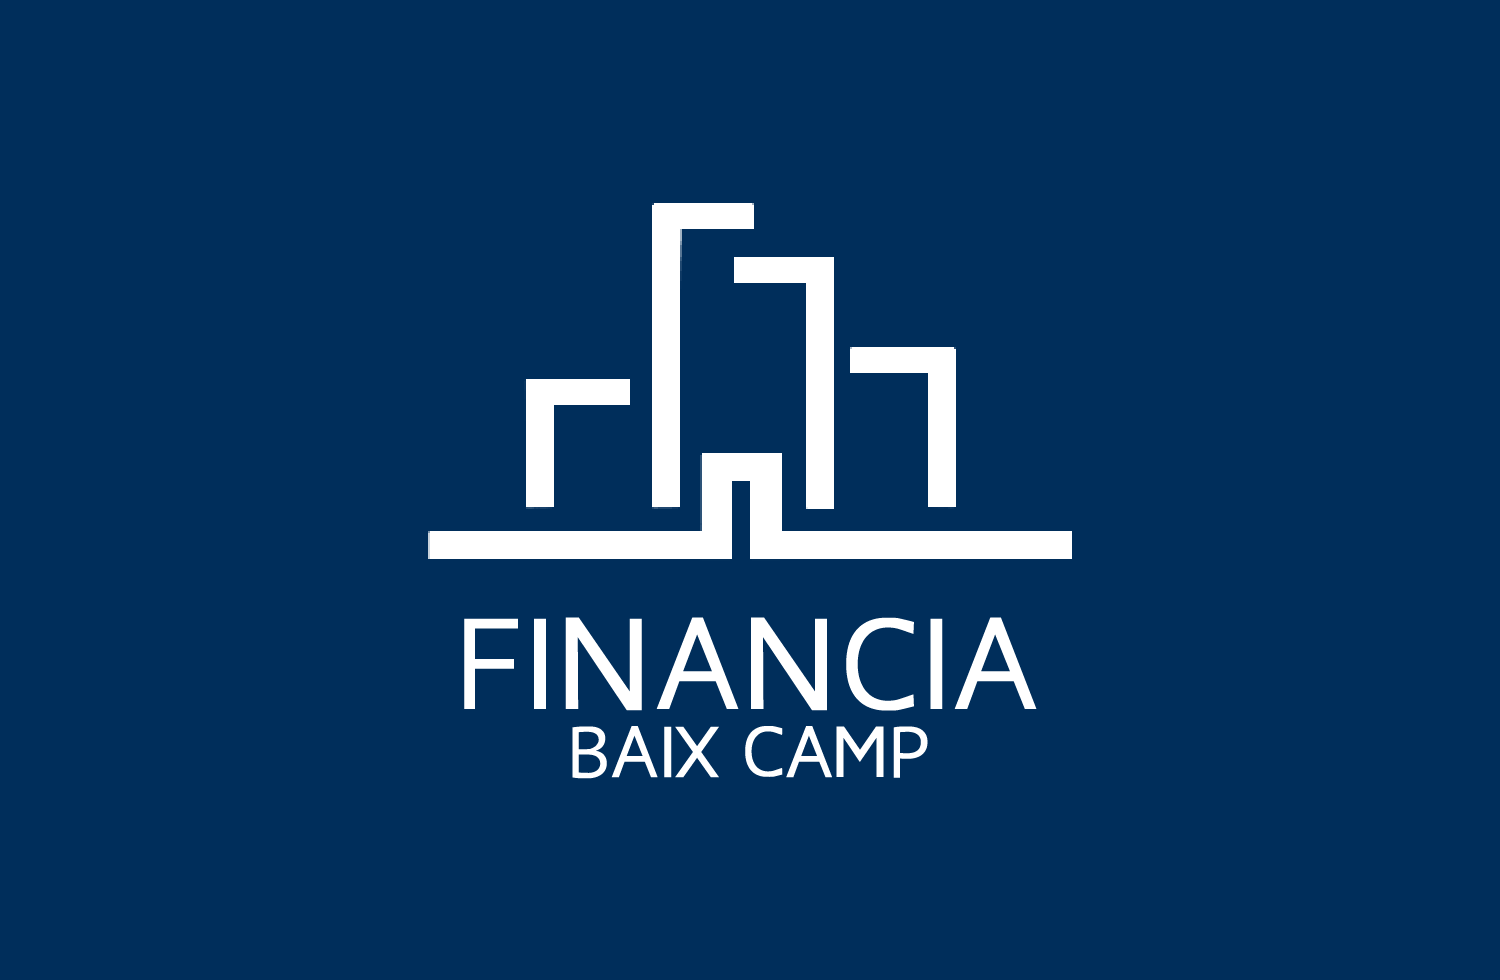 Financia Baix Camp